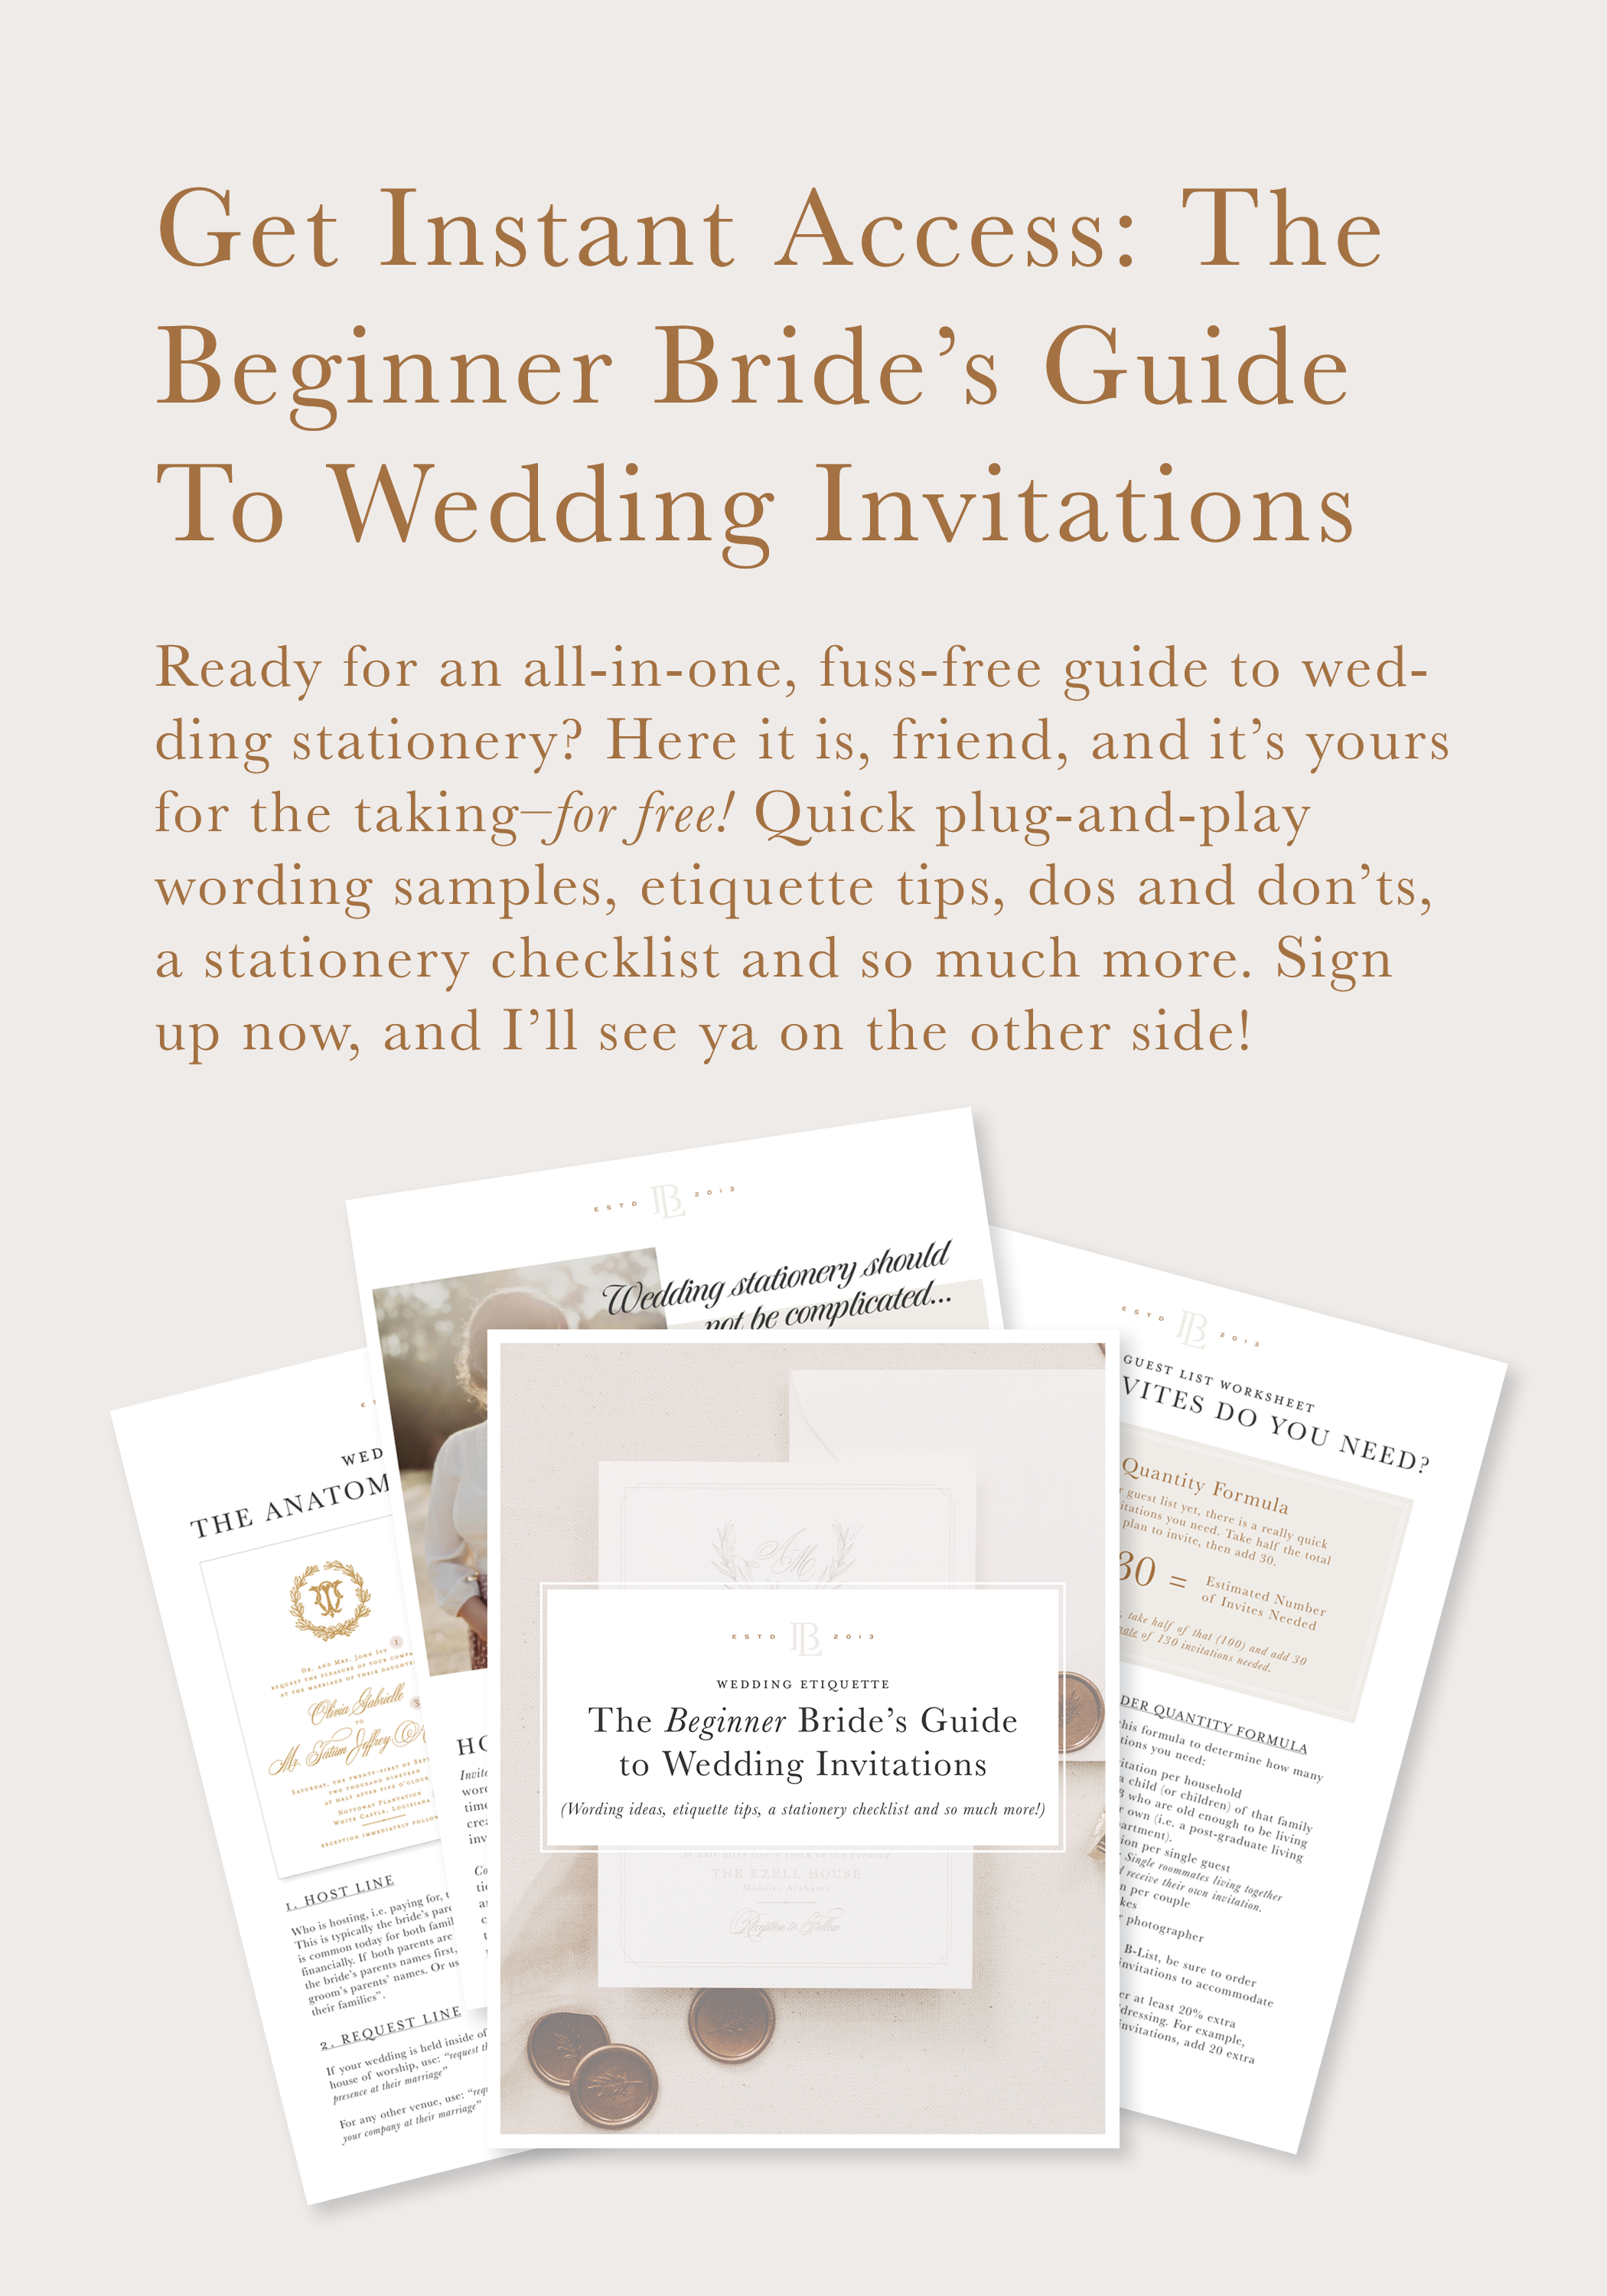 8 Answers To Top Wedding Invitation Etiquette Faqs Floral Wedding Invitations From Betty Lu Paperie Wedding Invitation Etiquette Invitation Wording Wedding Invitation Wording